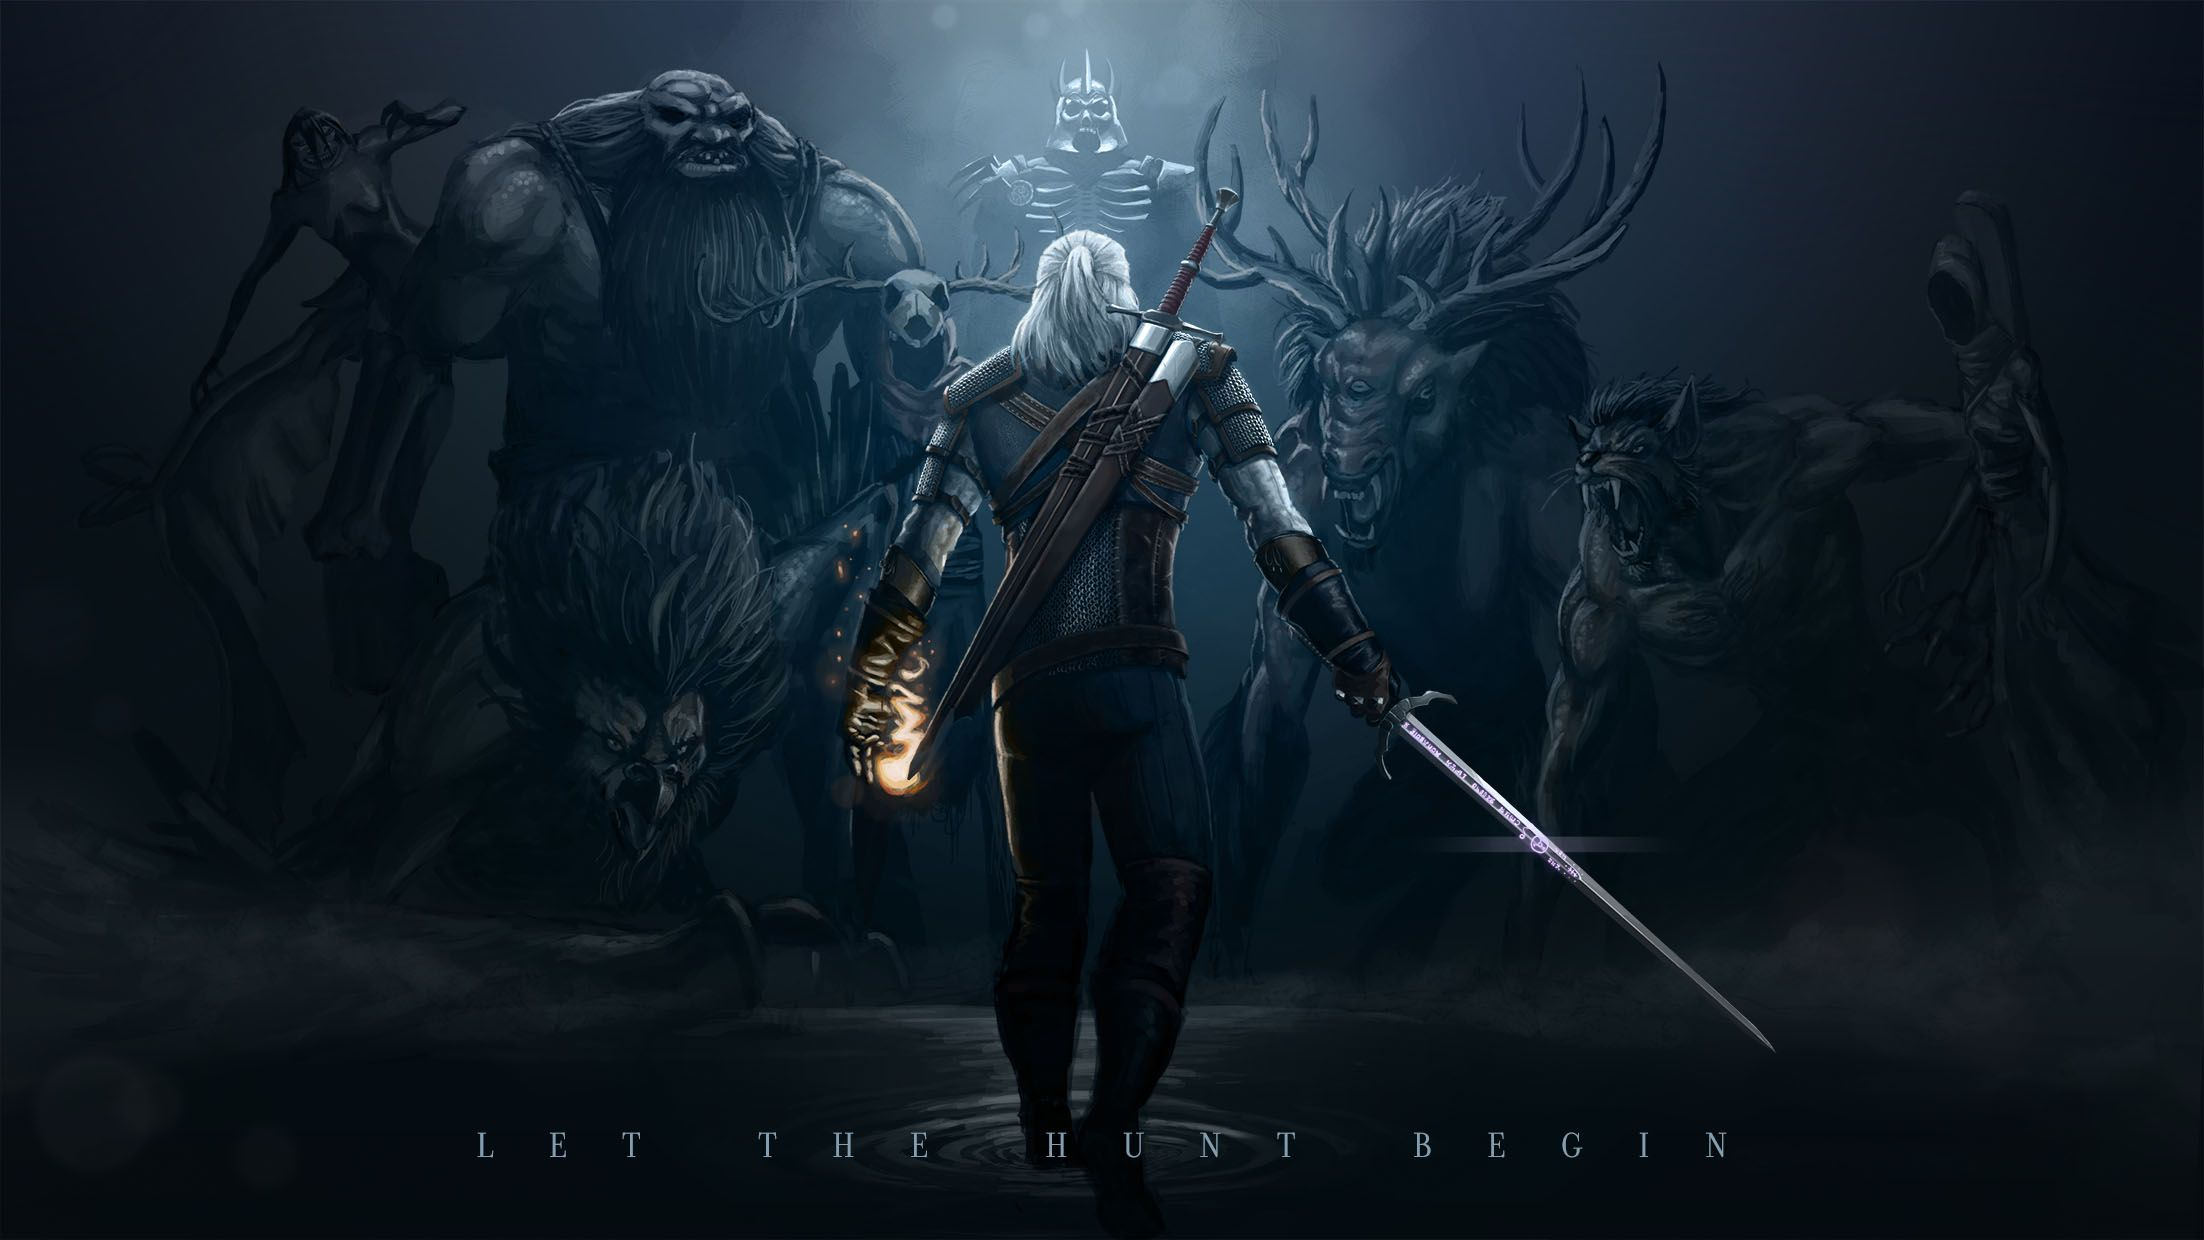 The Witcher 3 The Witcher Geralt The Witcher Wild Hunt The Witcher